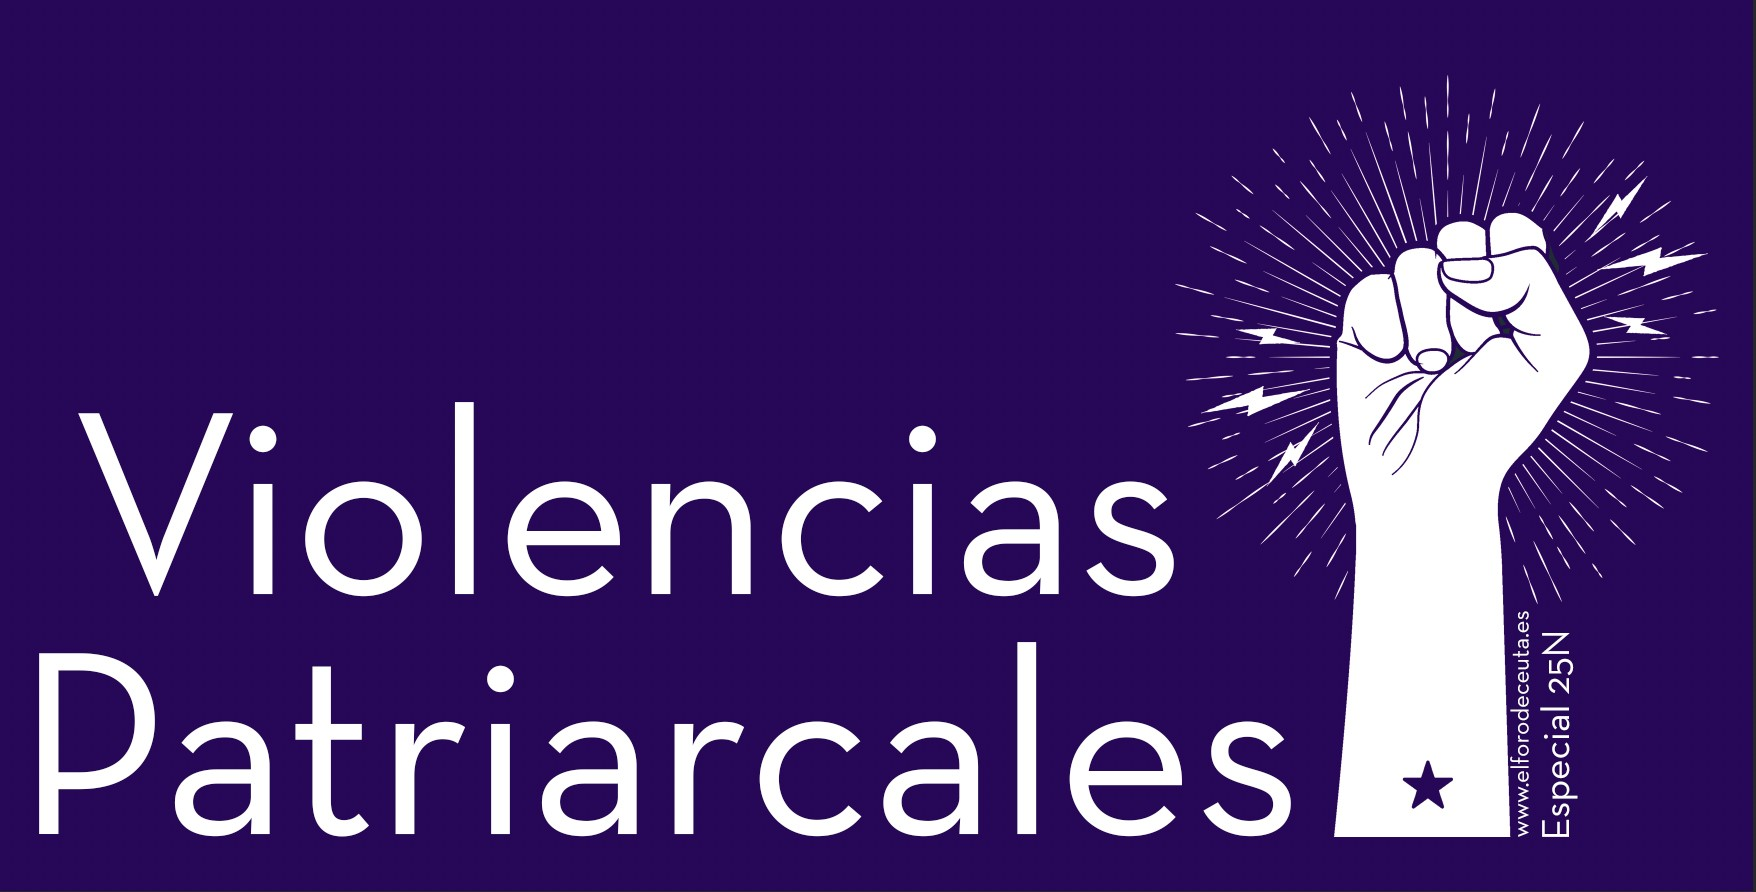 VIOLENCIAS PATRIARCALES